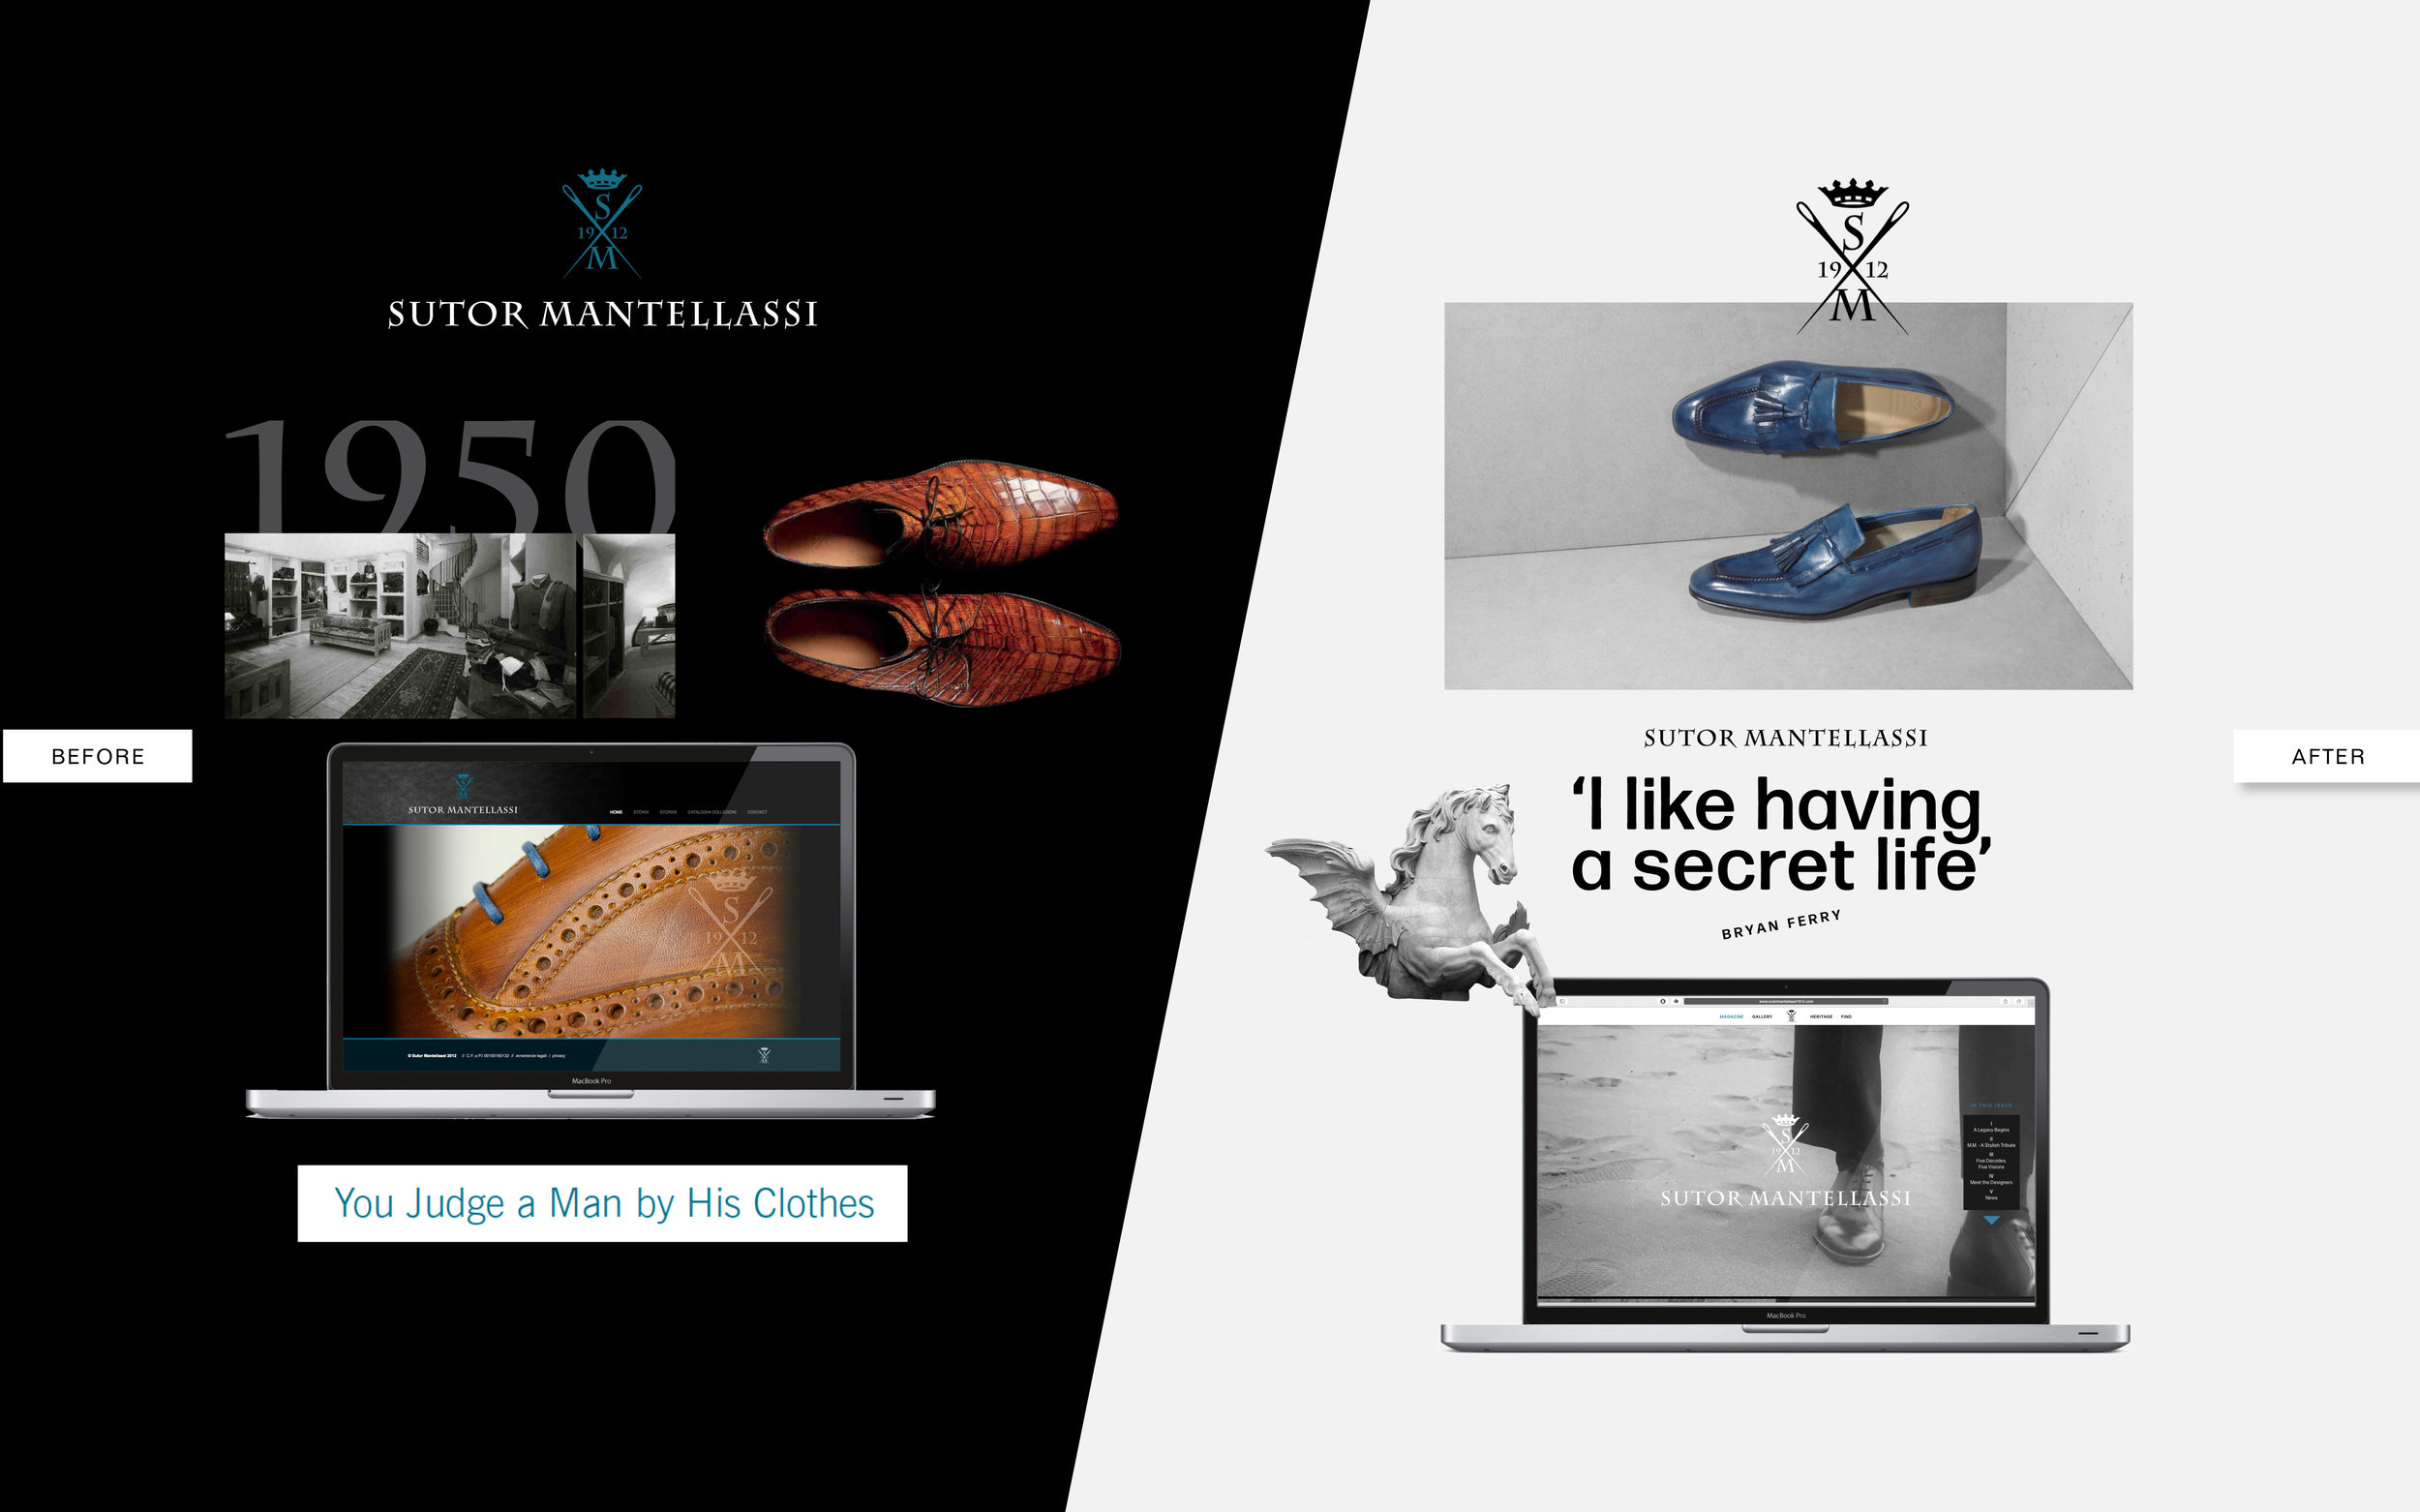 Sutor Mantellassi's brand image before the relaunch in 2014 and after relaunch in 2015